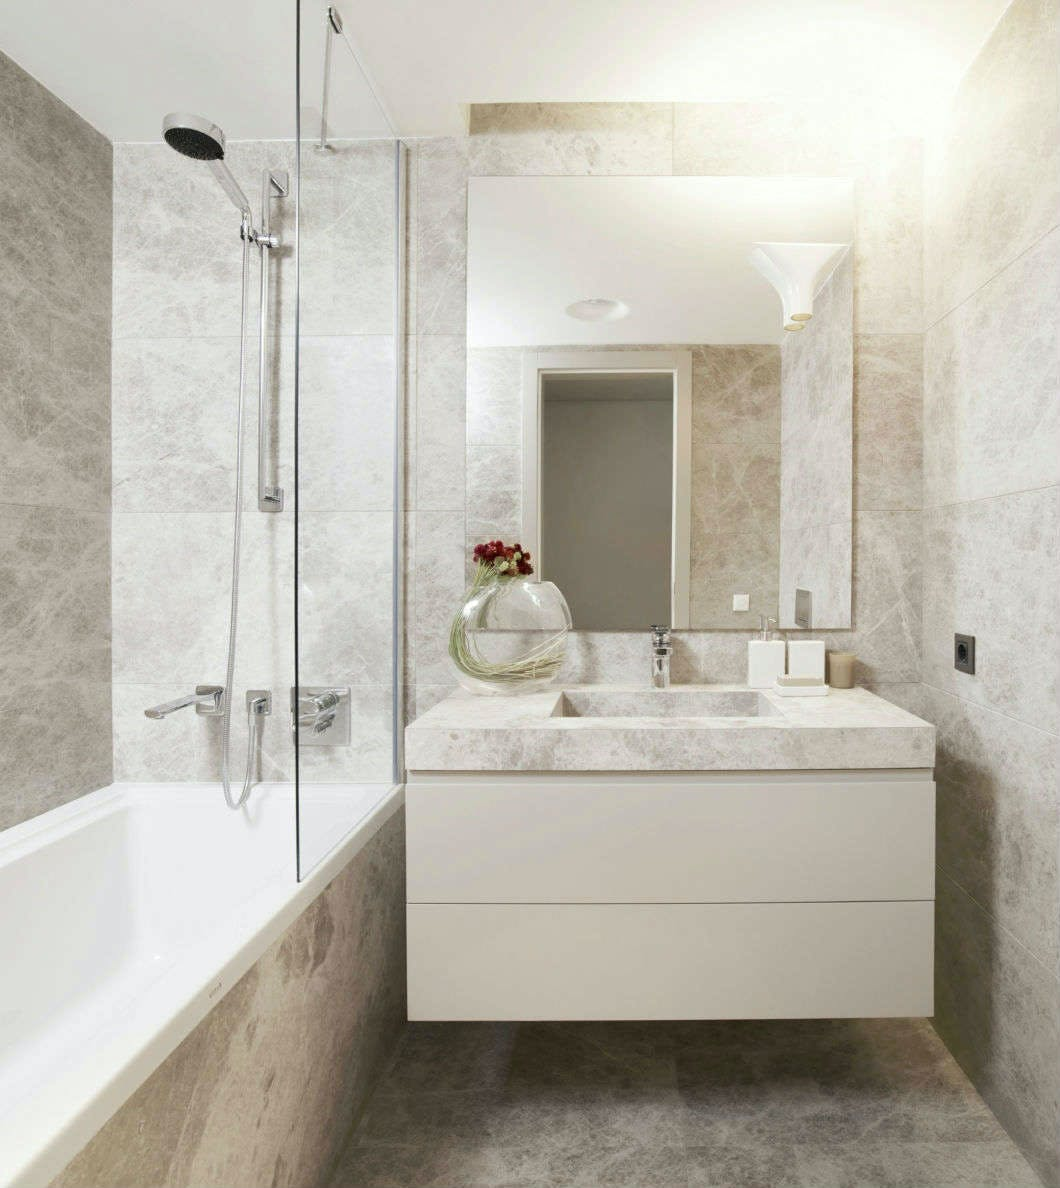 Small bathroom suites designs installation by more bathrooms - Pictures of small bathrooms ...